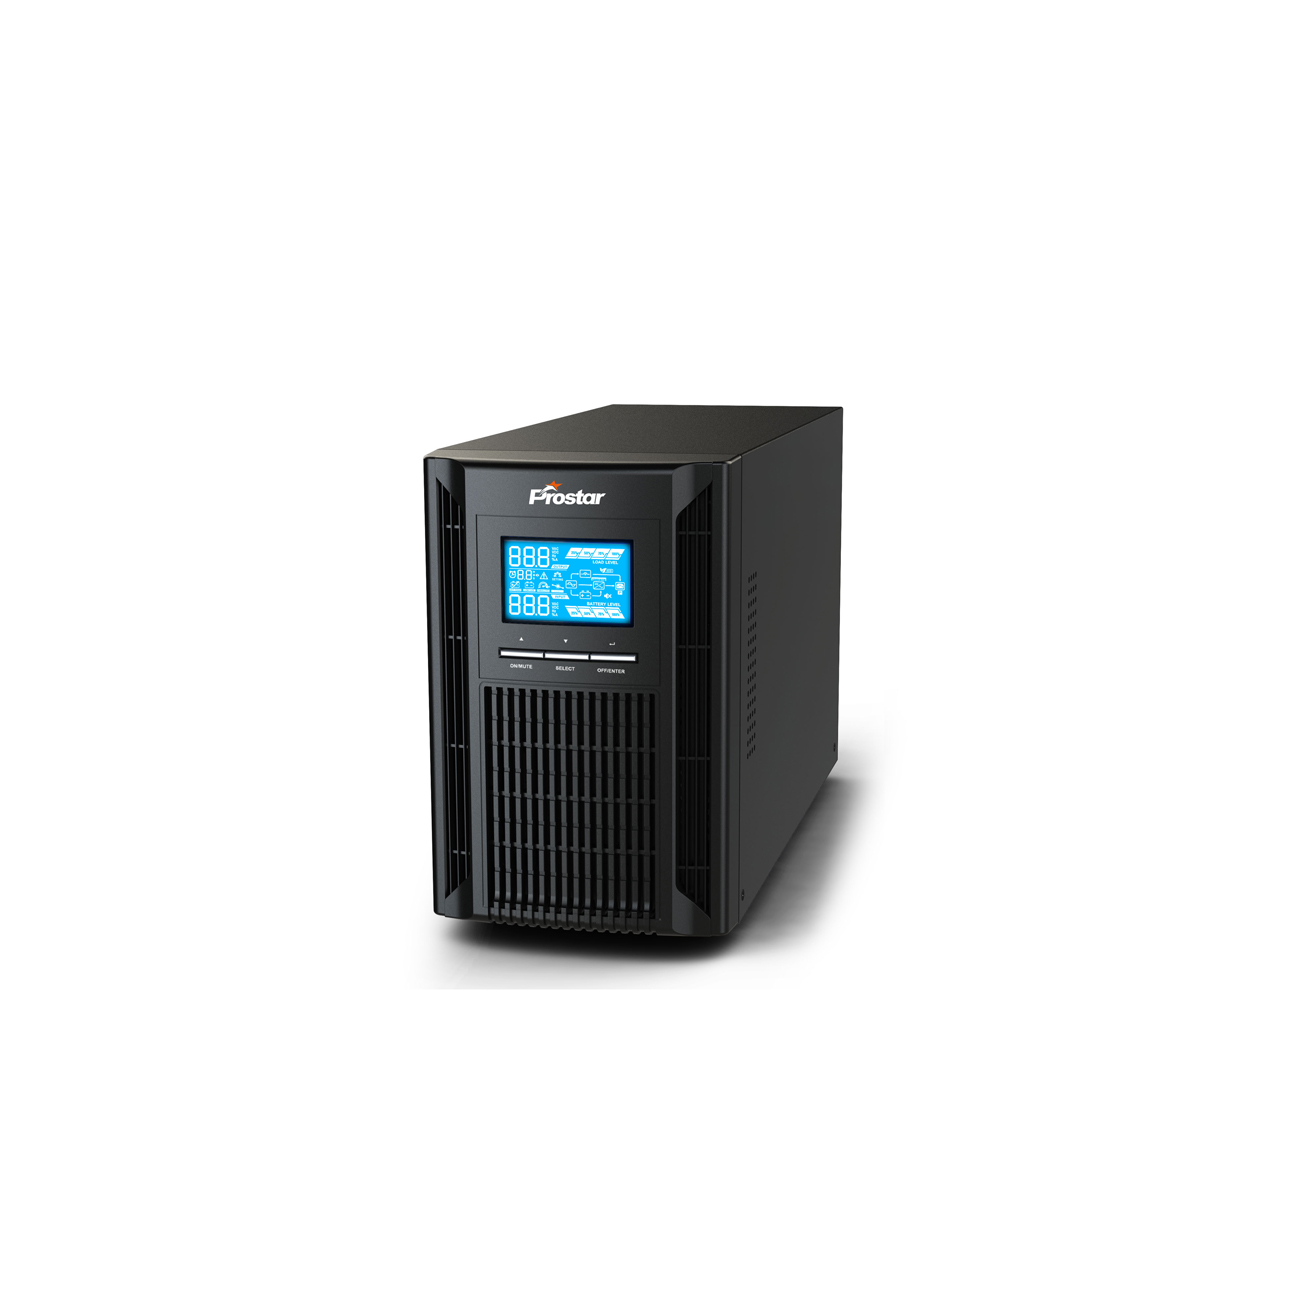 2KVA High Frequency UPS (1:1)